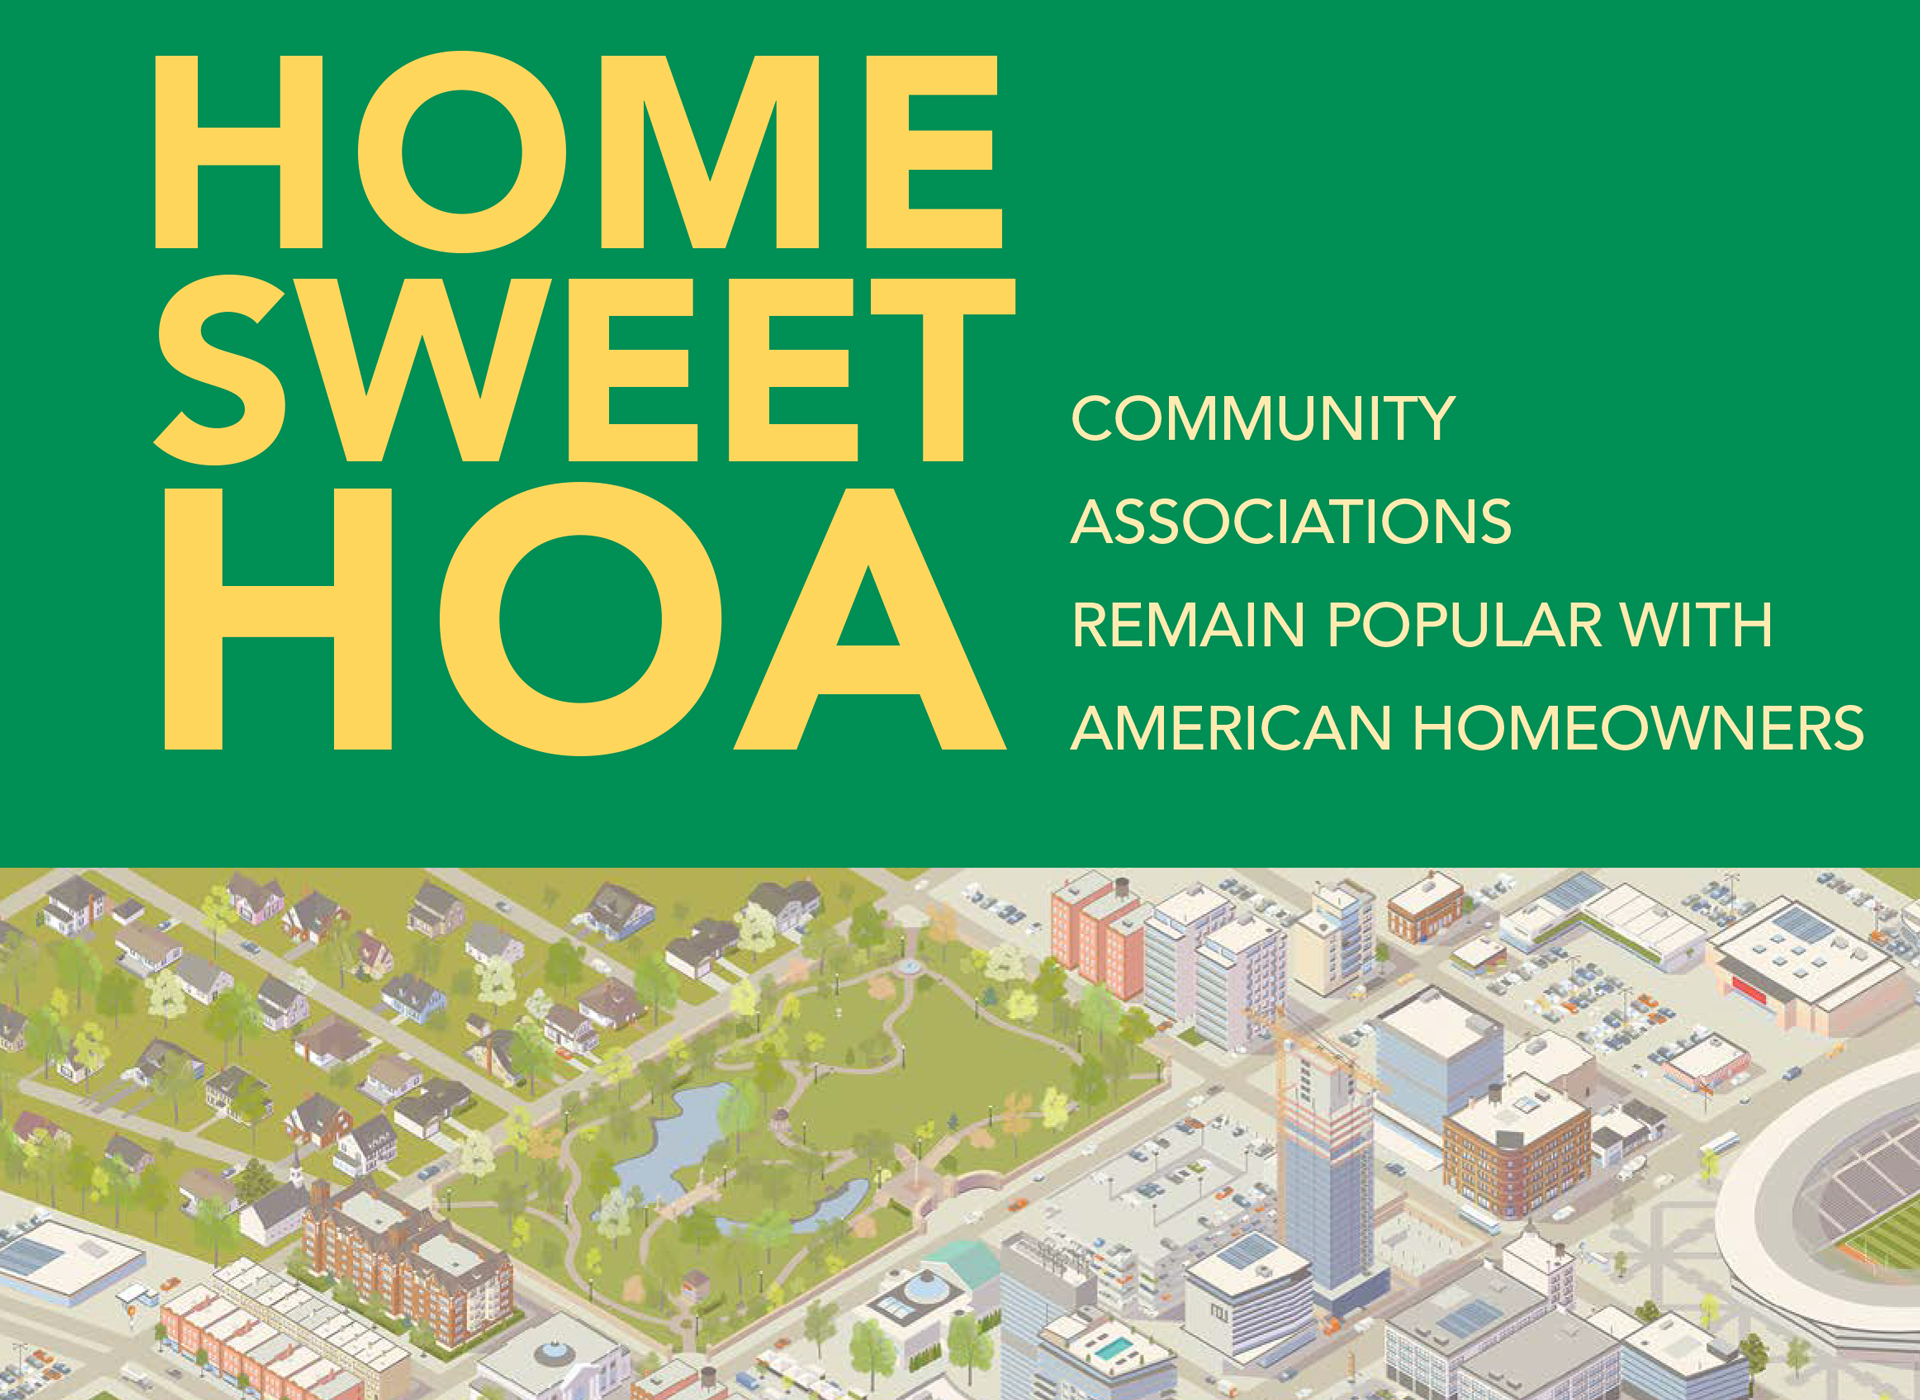 Home Sweet HOA: People Love Their Community Associations